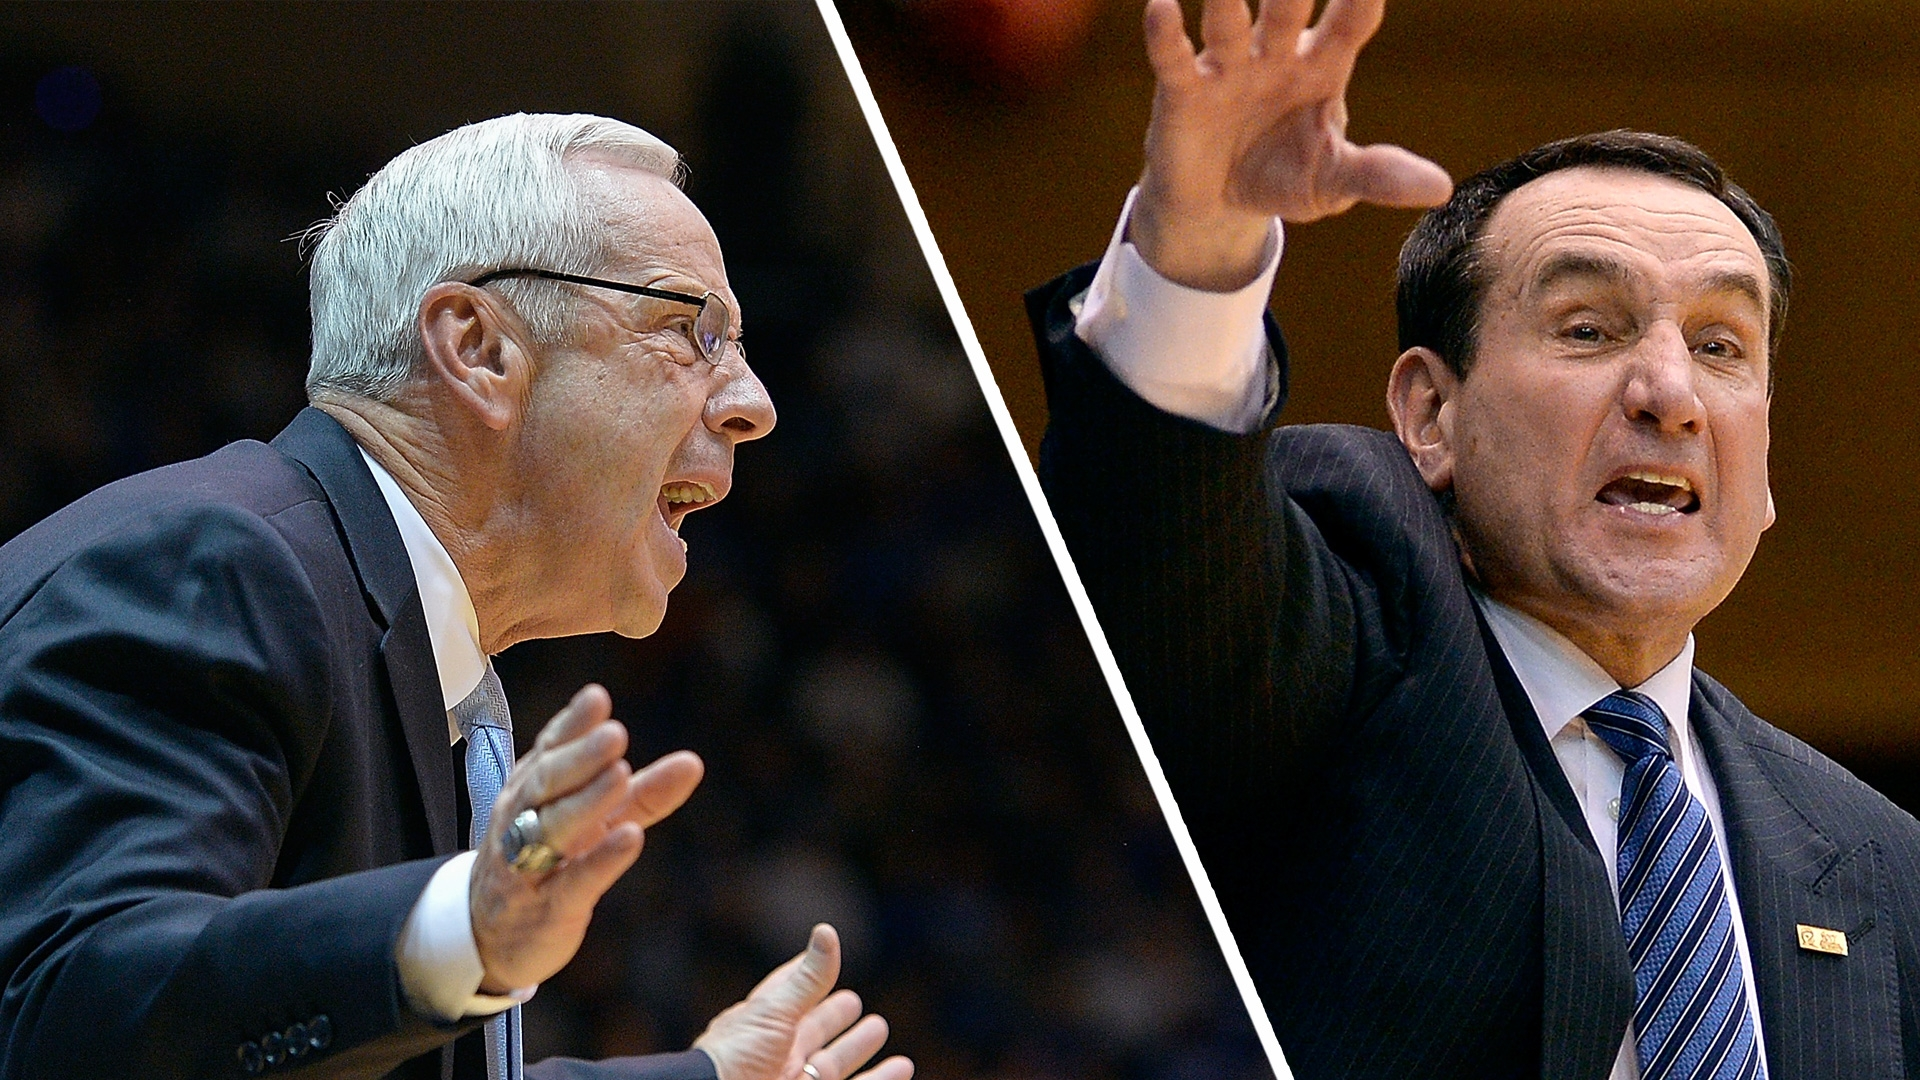 Split-roy-williams-mike-krzyzewski-021716-getty-ftrjpg_vep3cwwvt4ea1t3uppsp6rpma